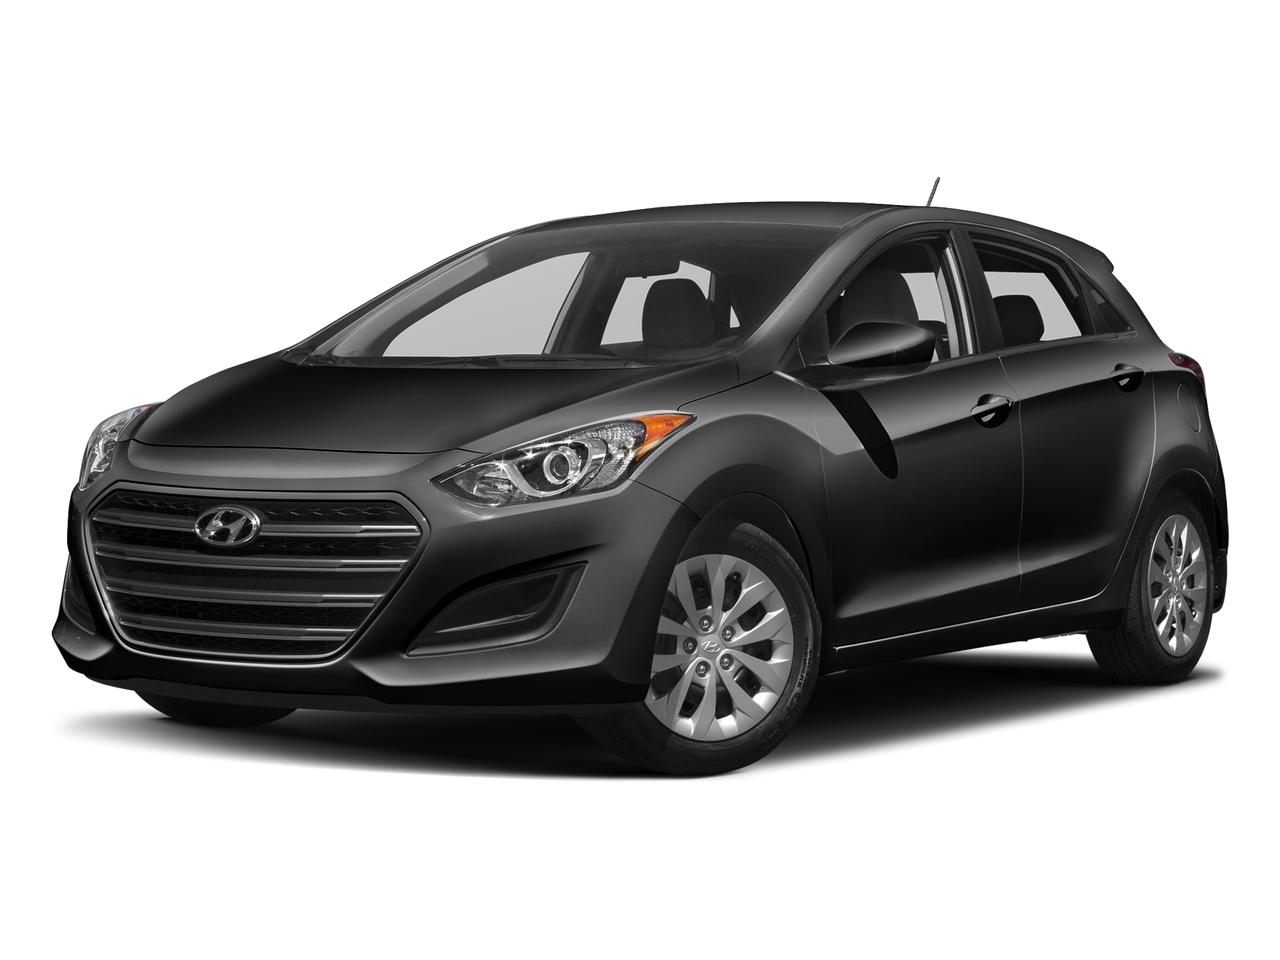 2017 Hyundai Elantra GT Vehicle Photo in DULUTH, GA 30096